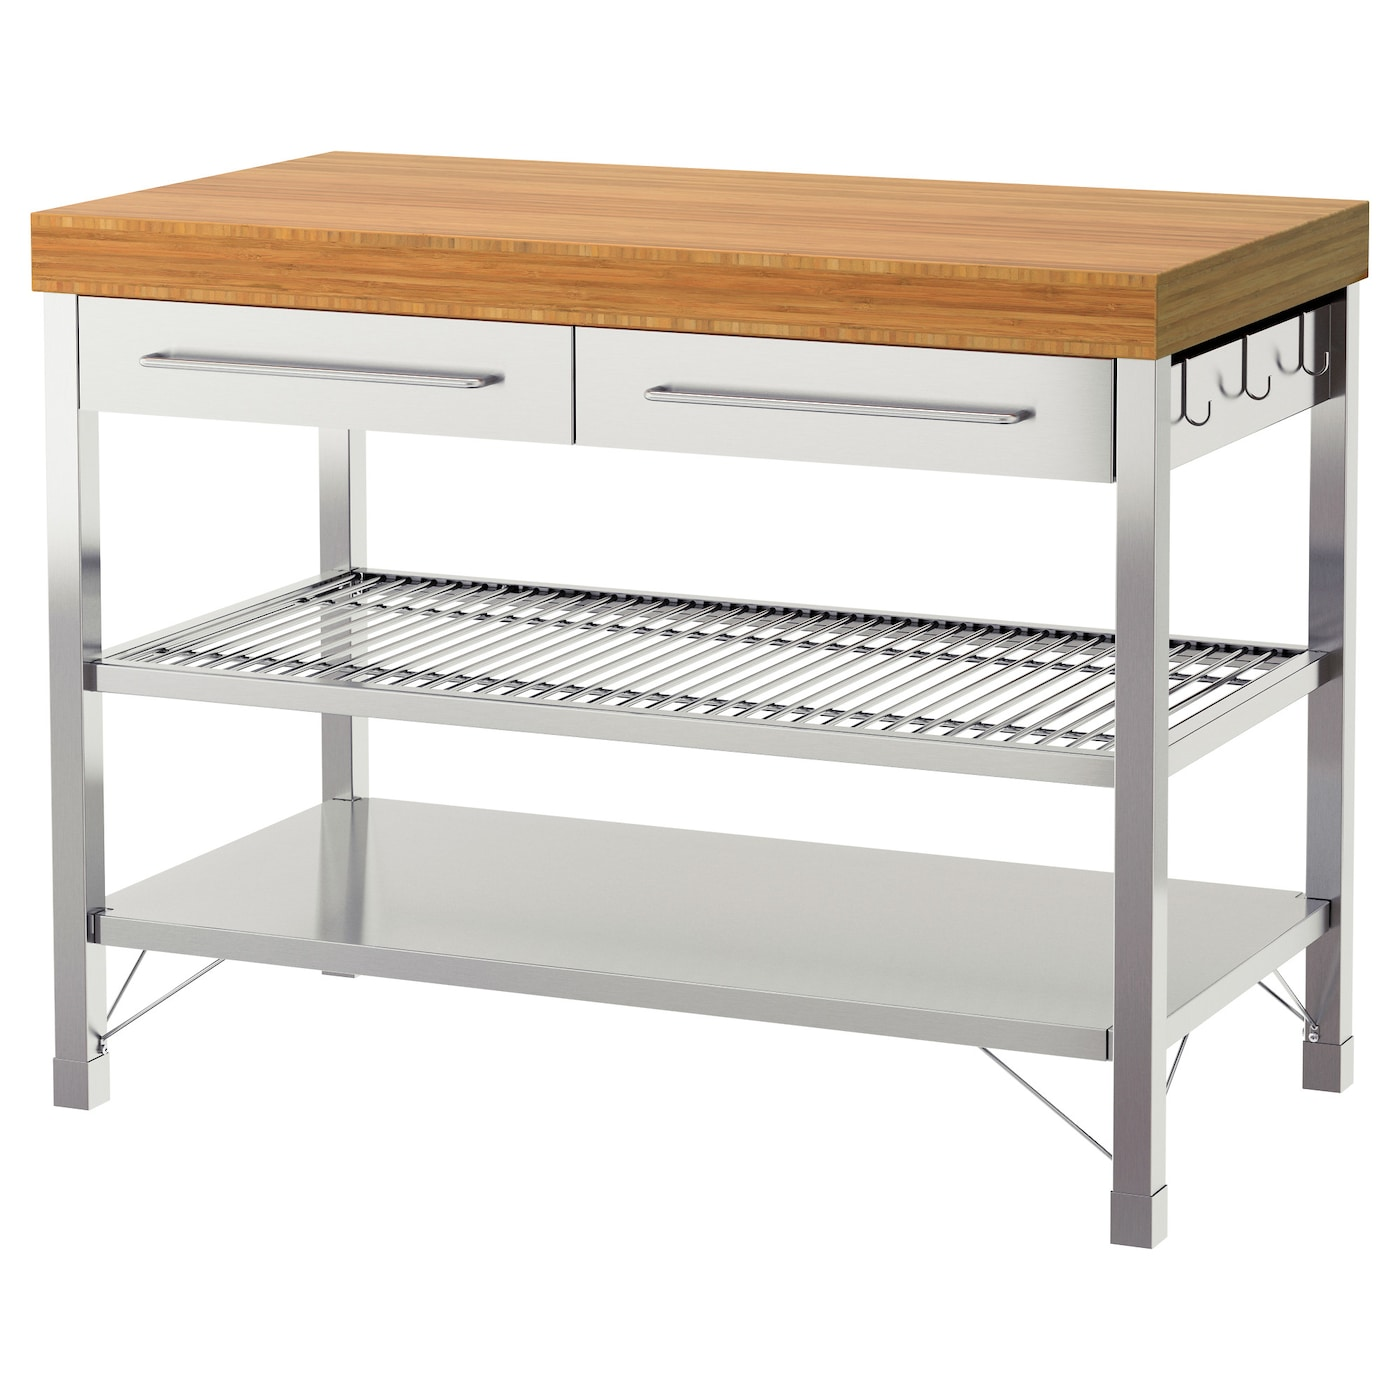 IKEA RIMFORSA Work Bench Gives You Extra Storage, Utility And Work Space.